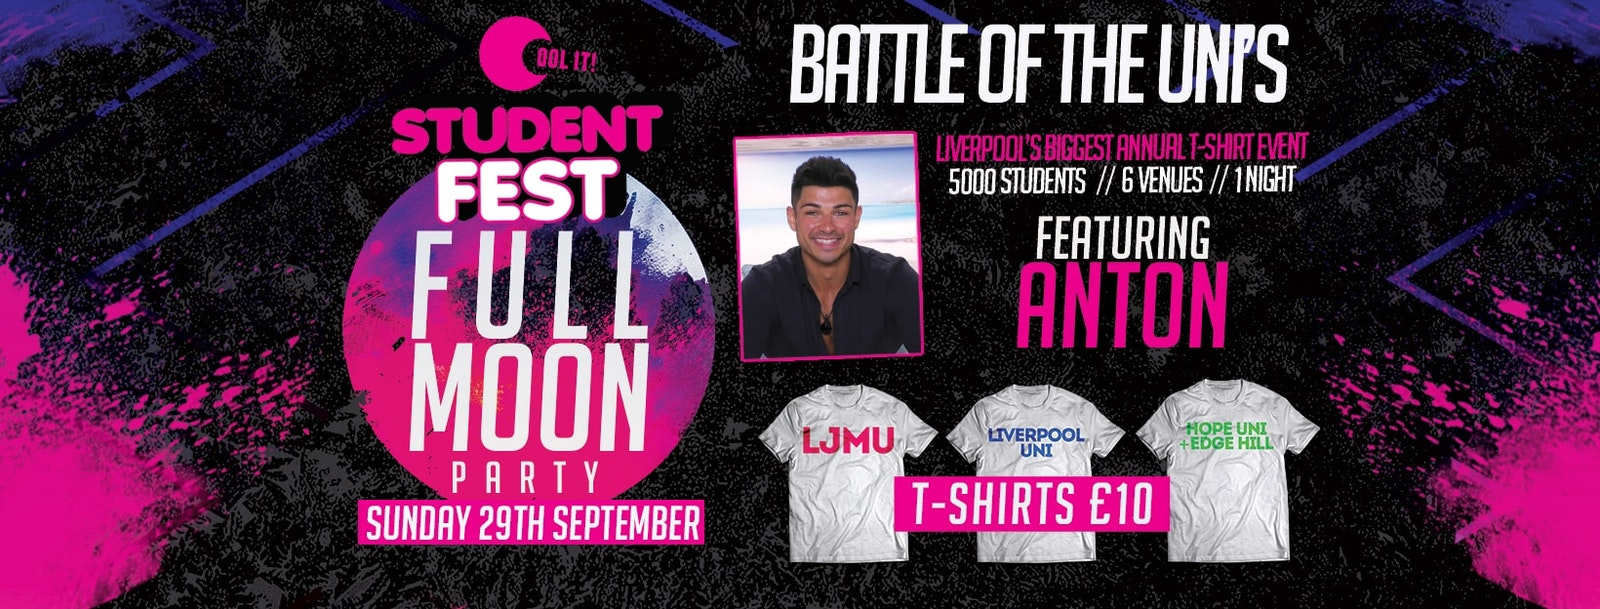 STUDENT FEST 2019 / FULL MOON Party with Anton from LOVE ISLAND